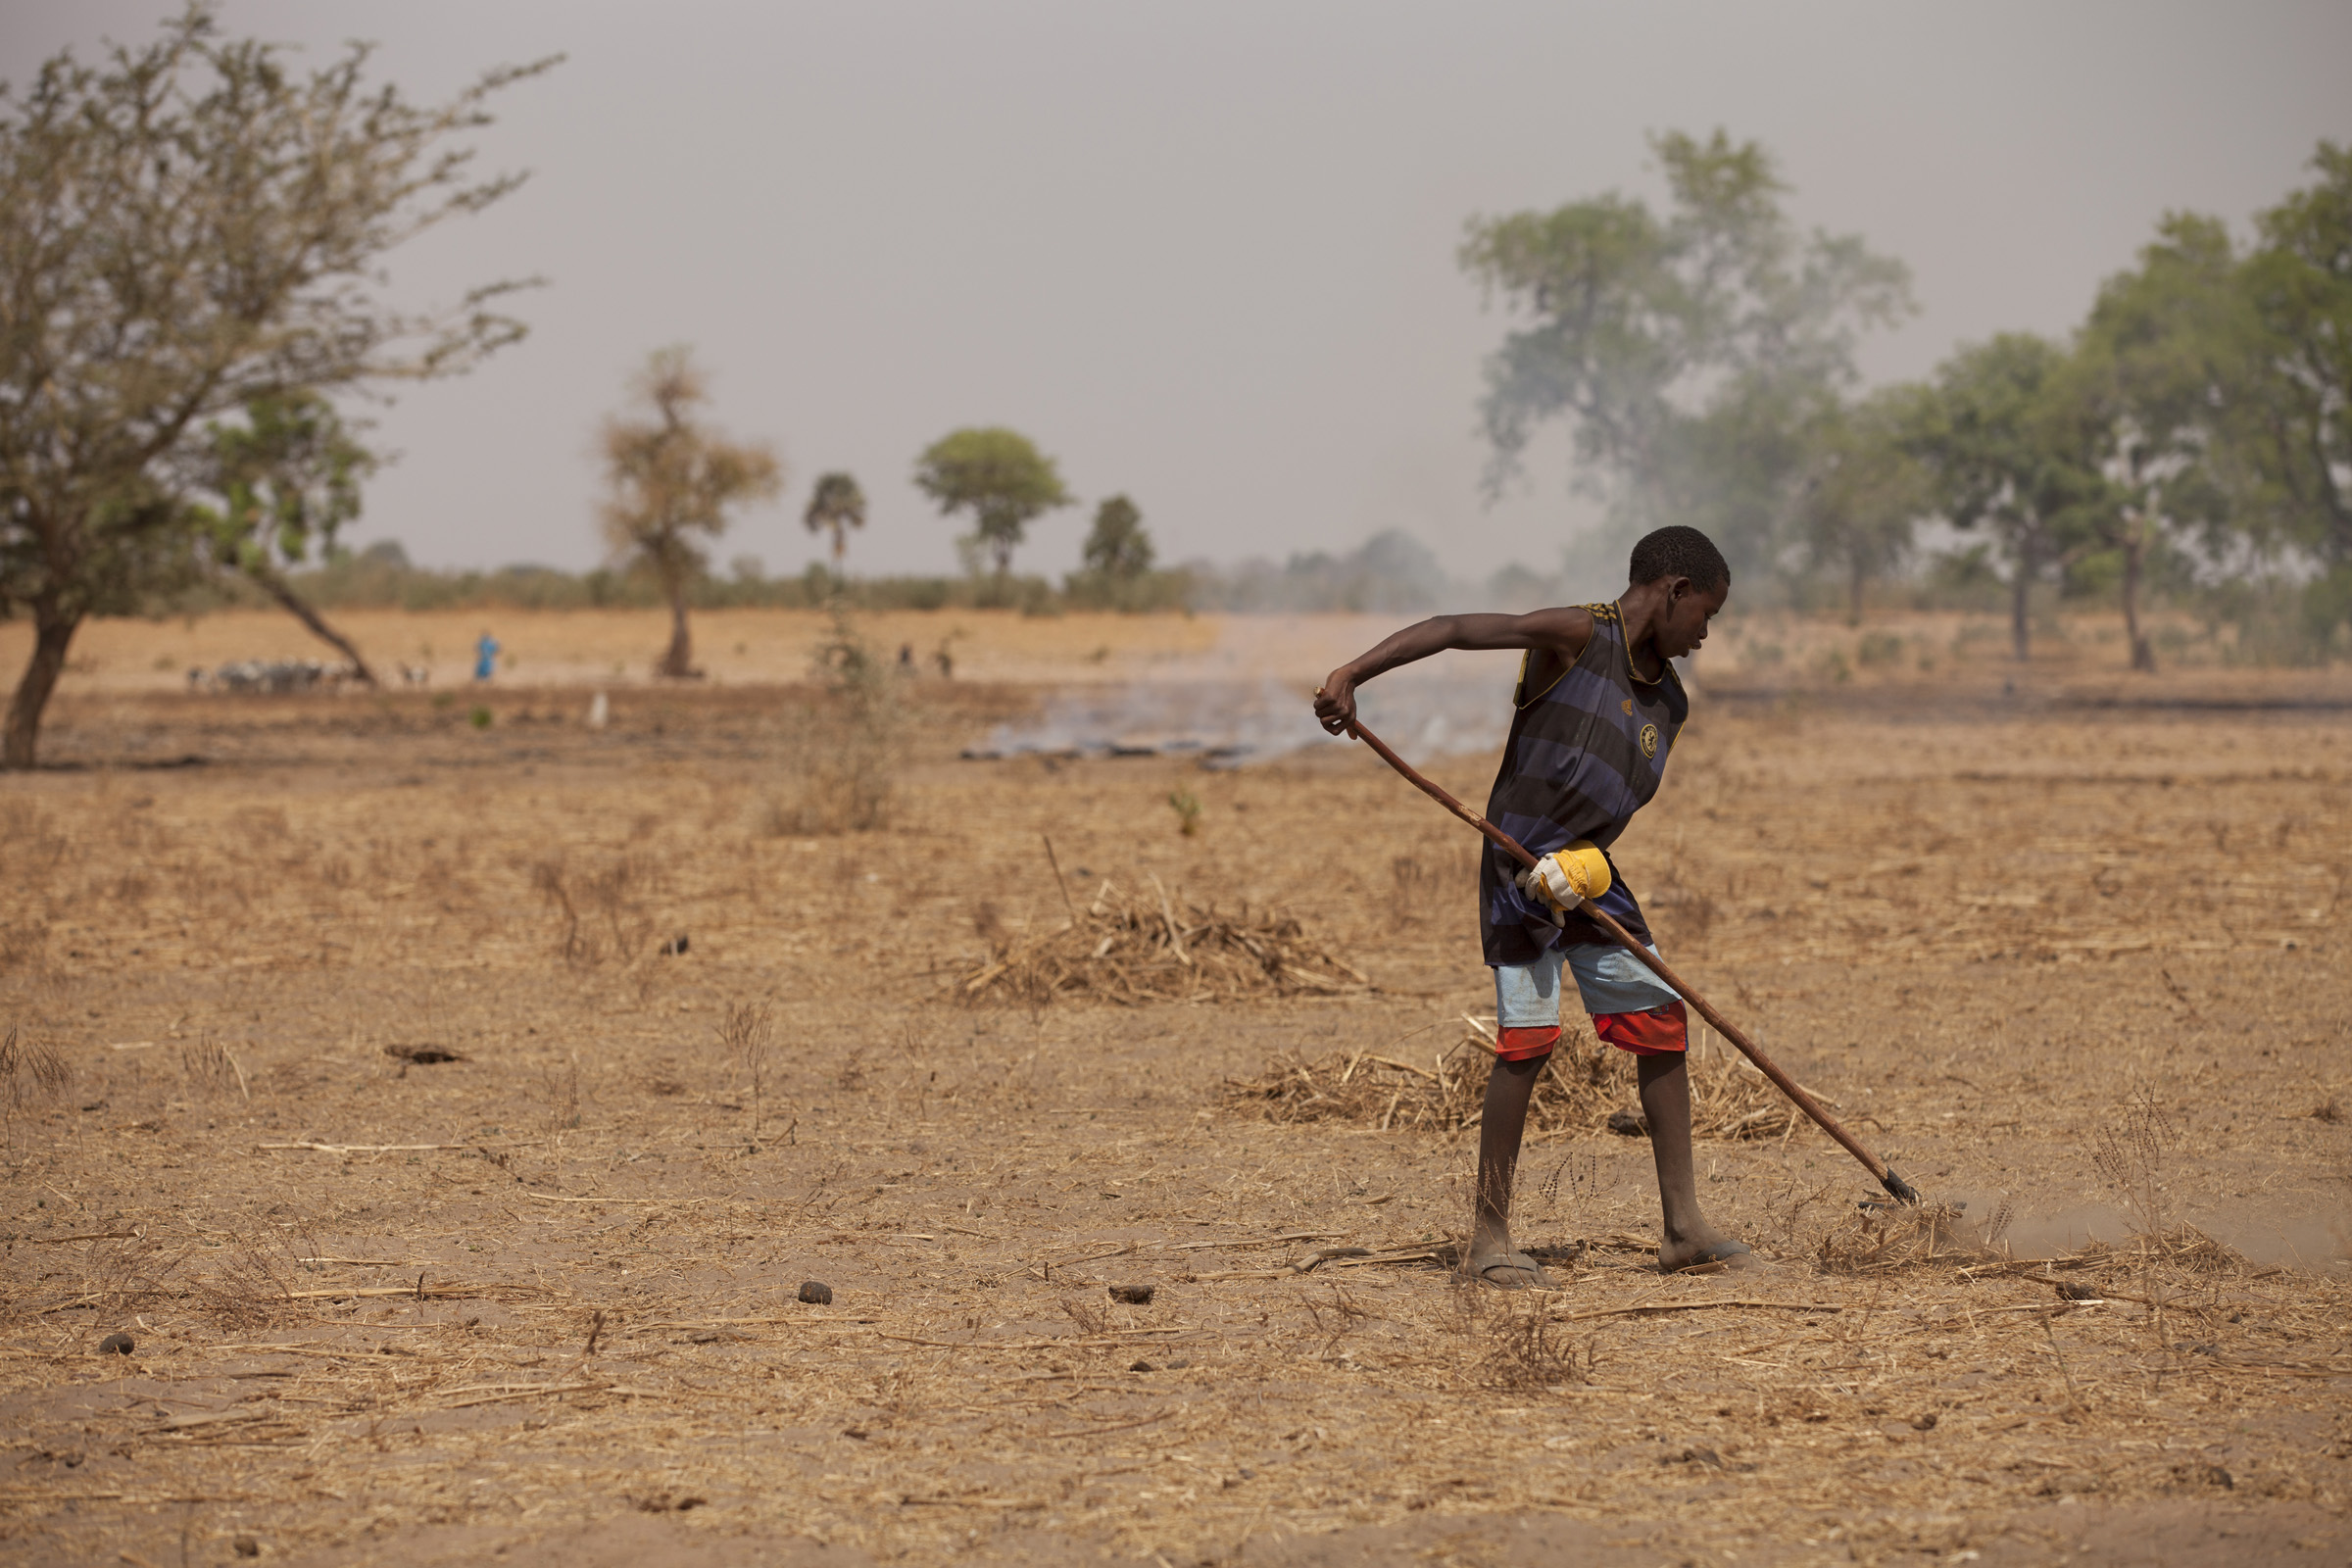 A young boy rakes away crop covers in land affected by wind erosion (Senegal). Photo: Milo Mitchell. Source: Flickr (IFPRI Image)